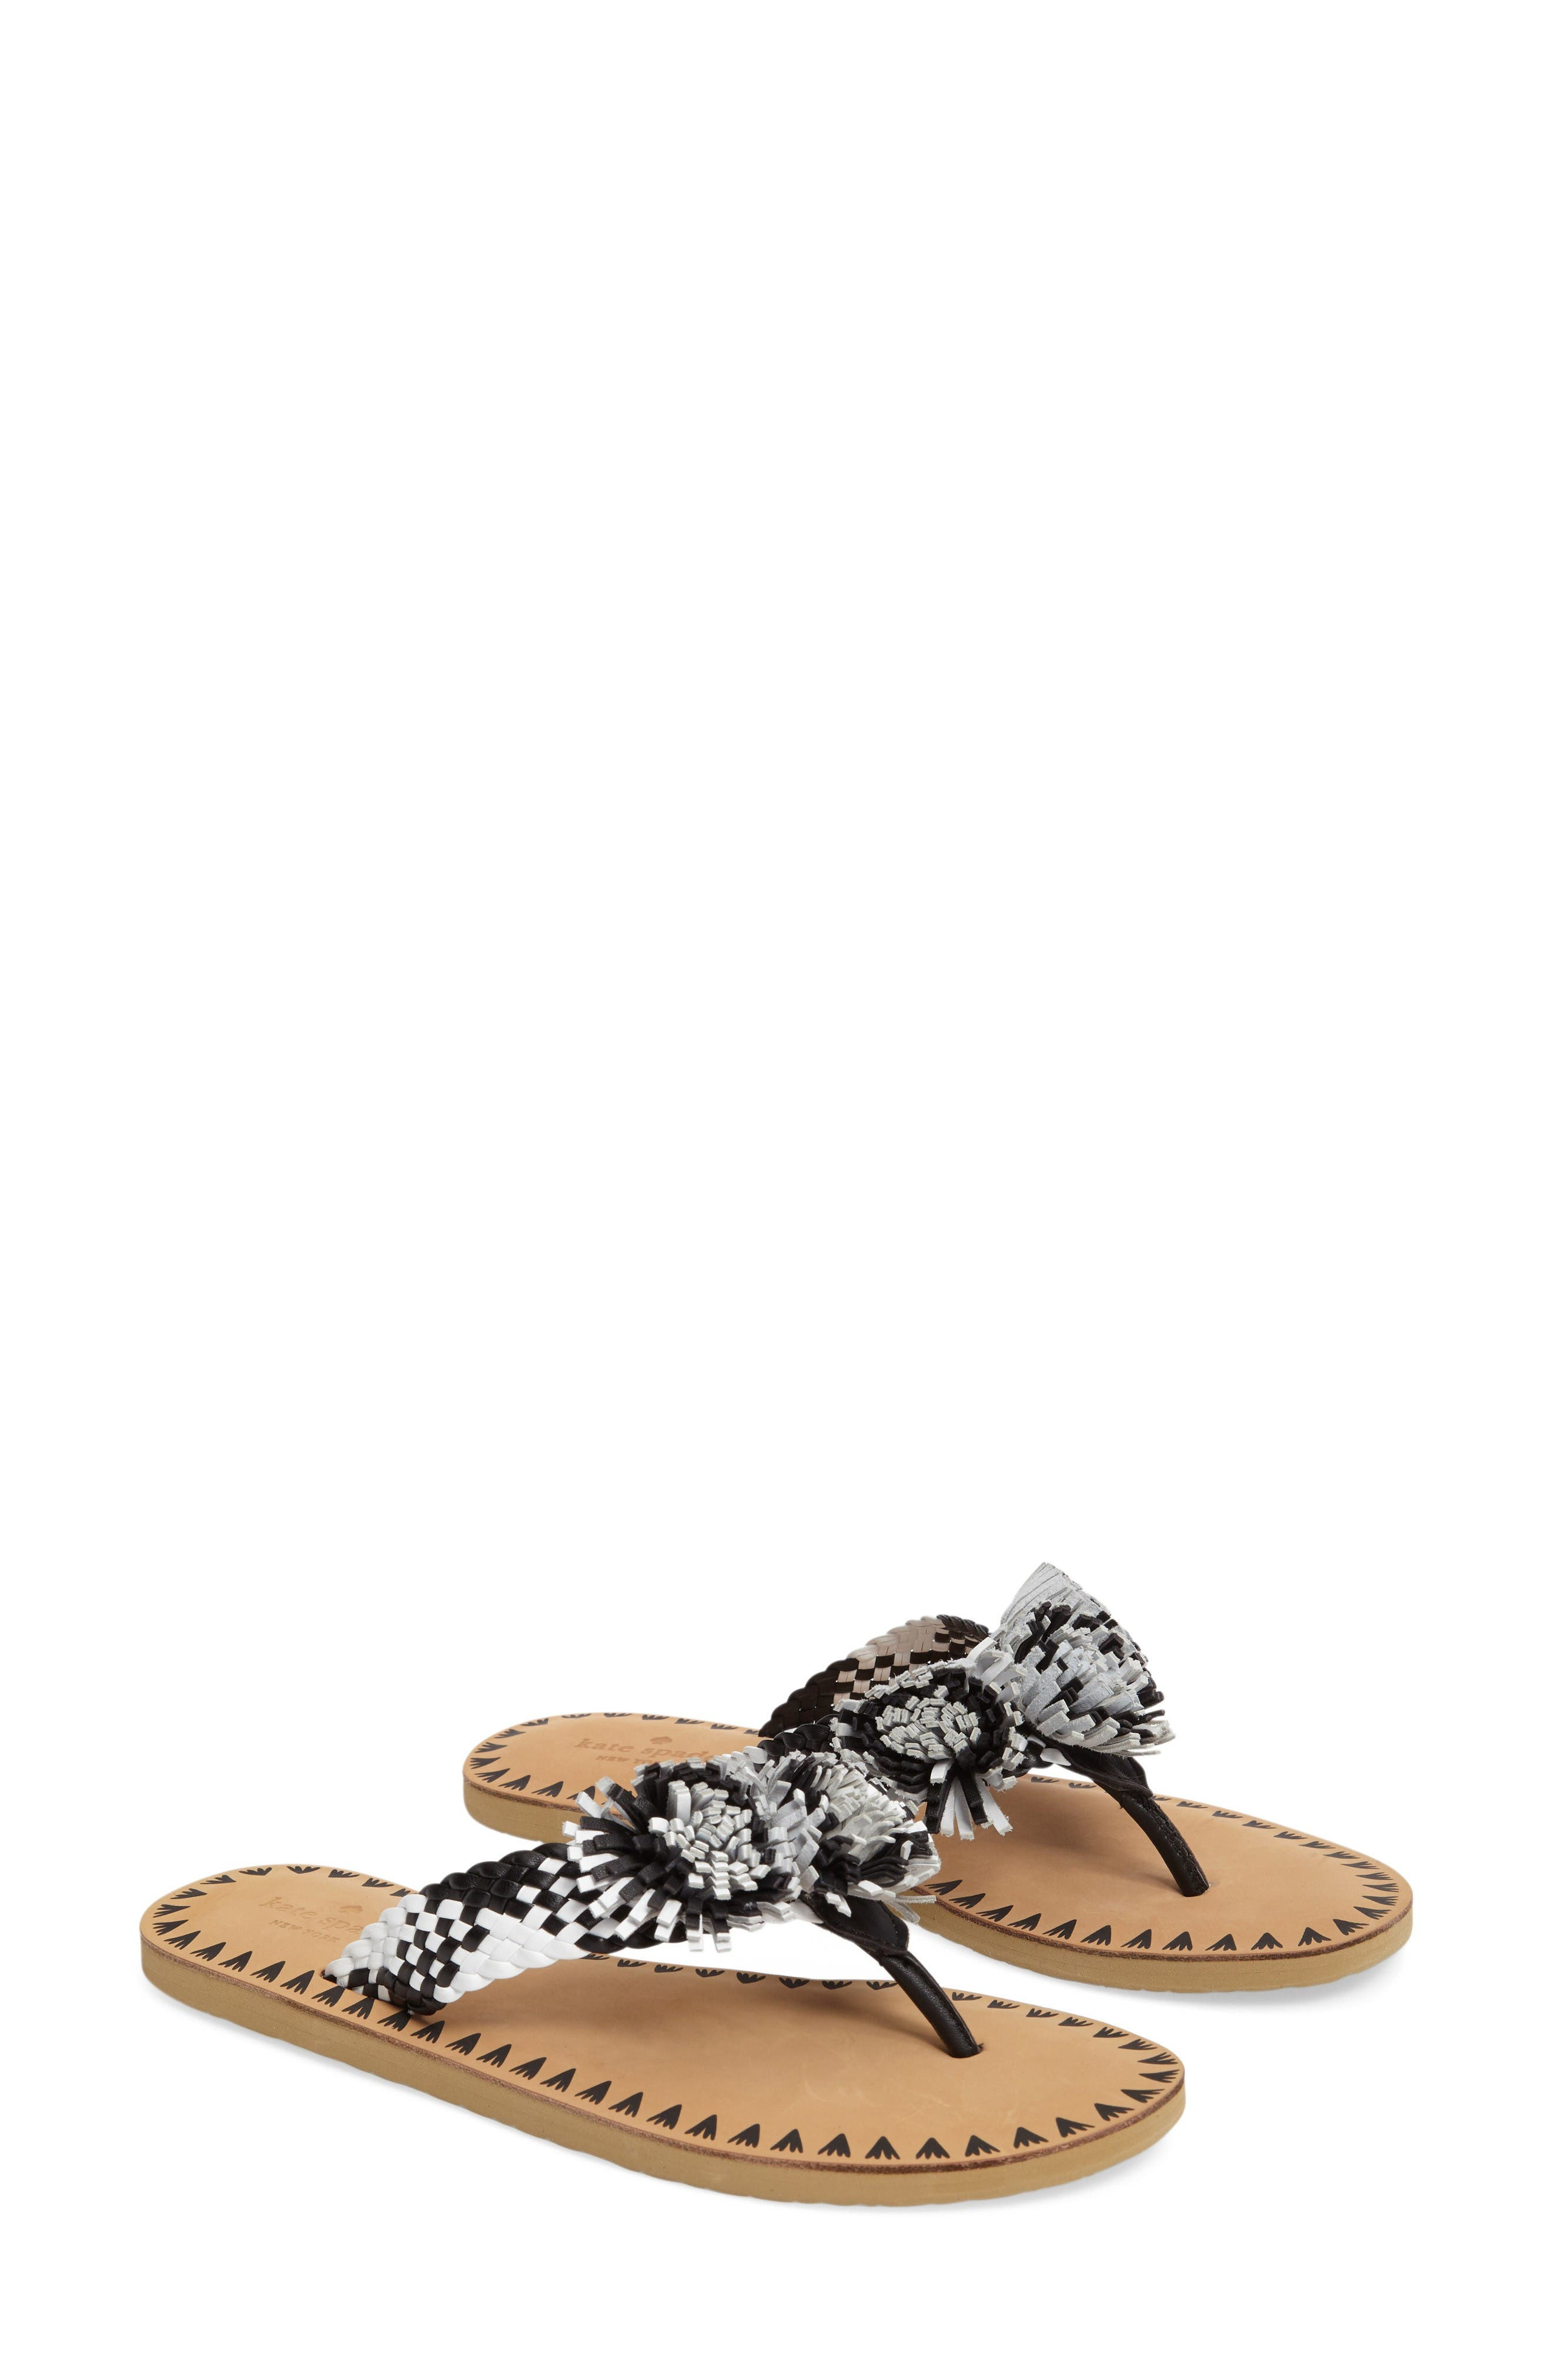 Alternate Image 2  - kate spade new york idette fringe flip flop (Women)